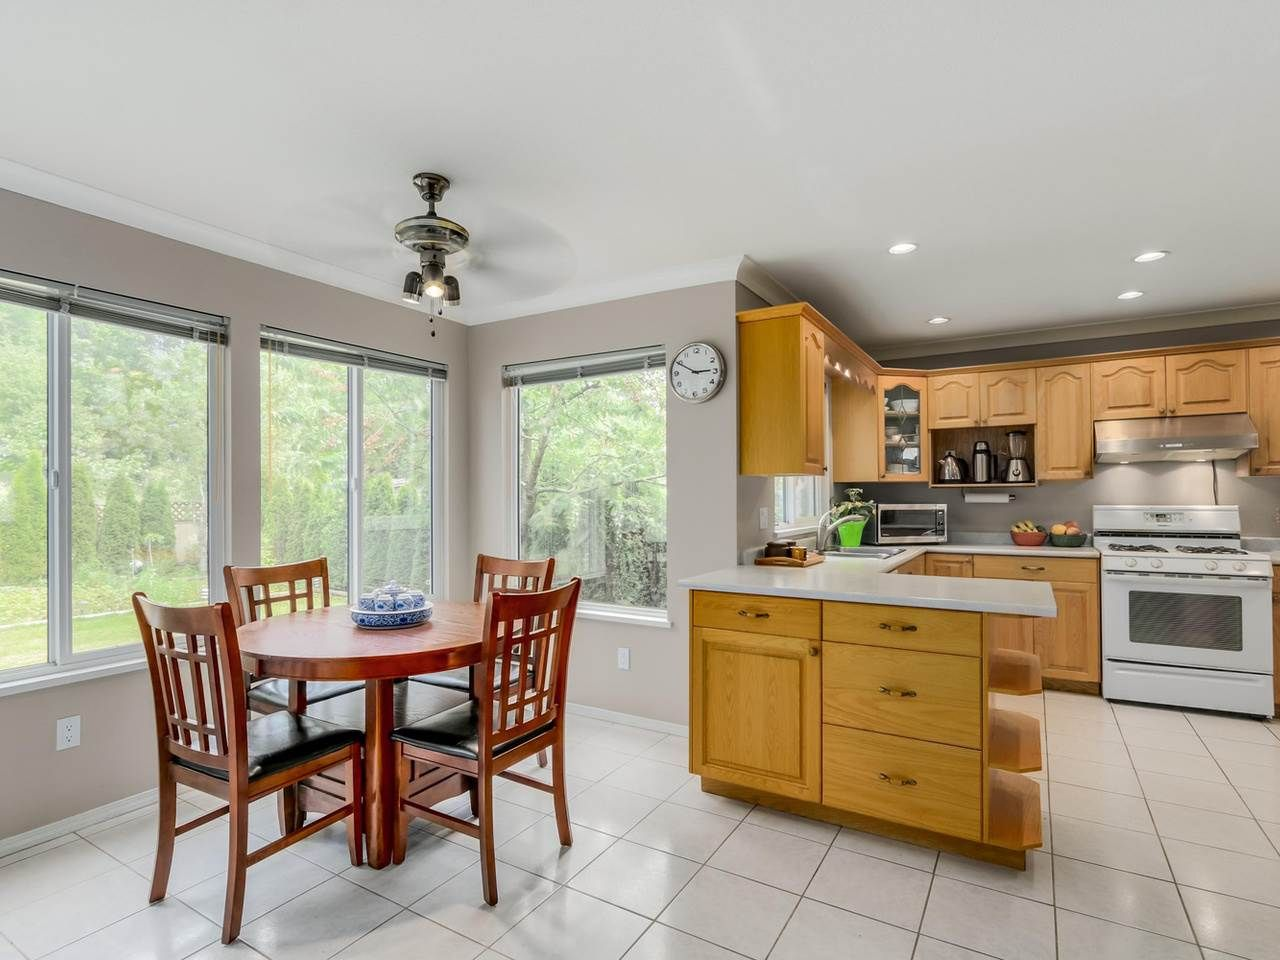 """Photo 7: Photos: 8238 149 Street in Surrey: Bear Creek Green Timbers House for sale in """"SHAUGHNESSY"""" : MLS®# R2078750"""